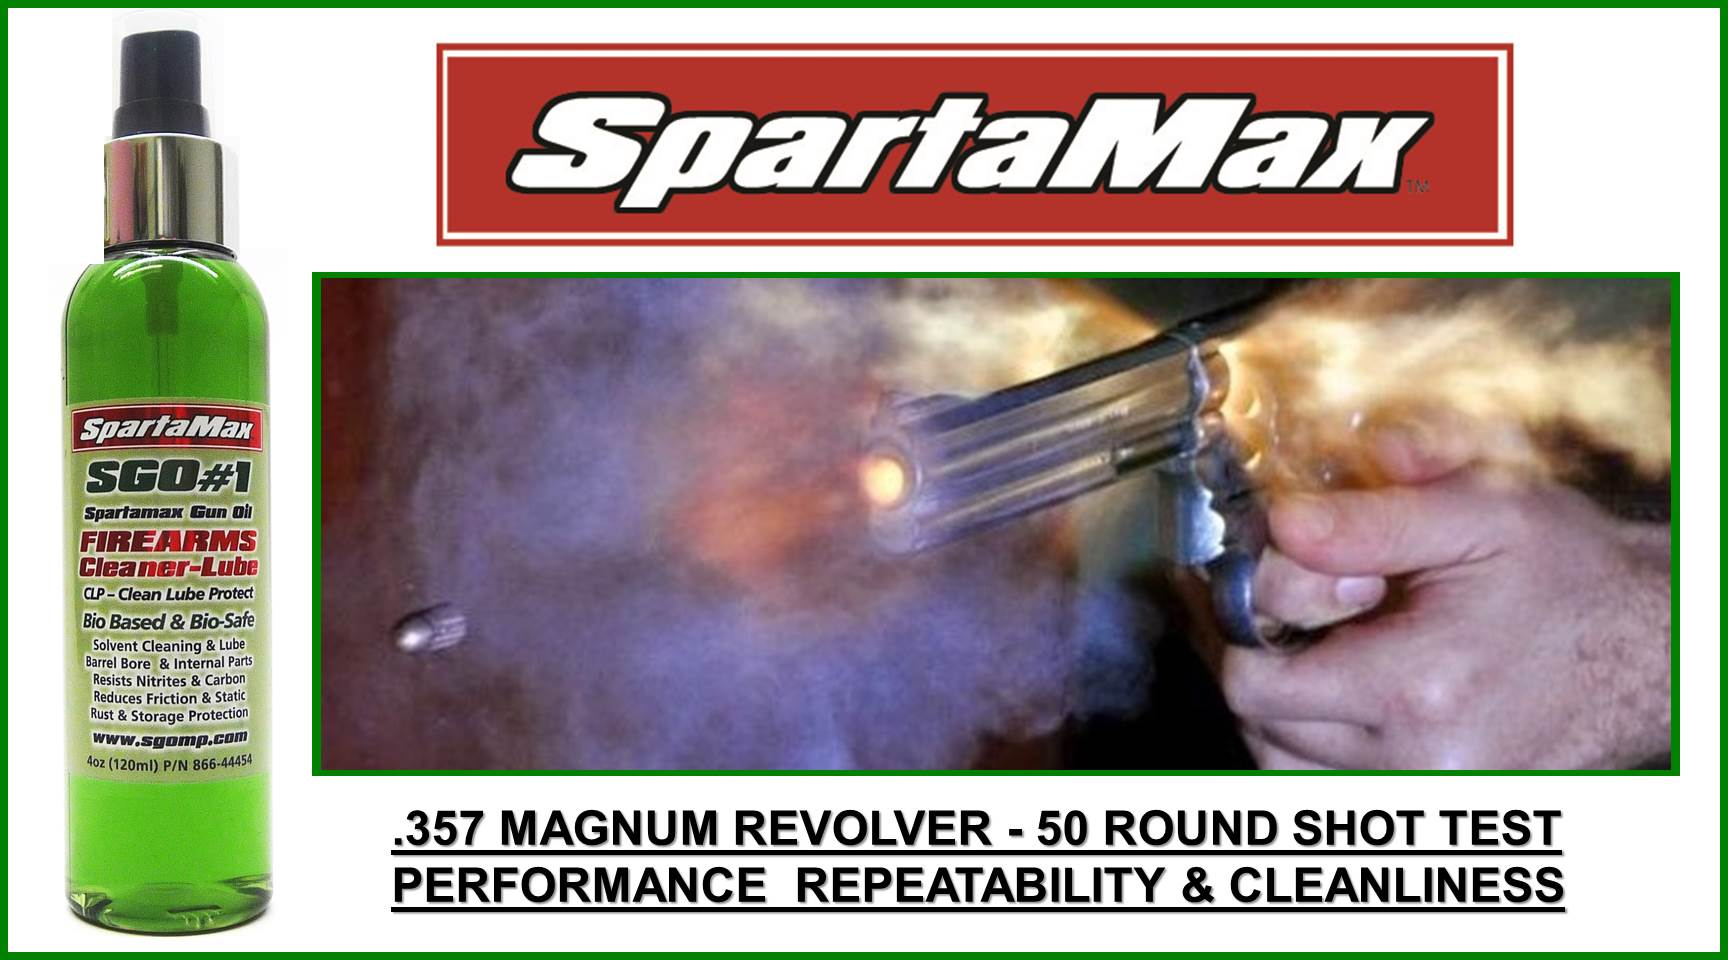 SpartaMax Products - 357 Magnum Pistol T & E     50 Rnd Test